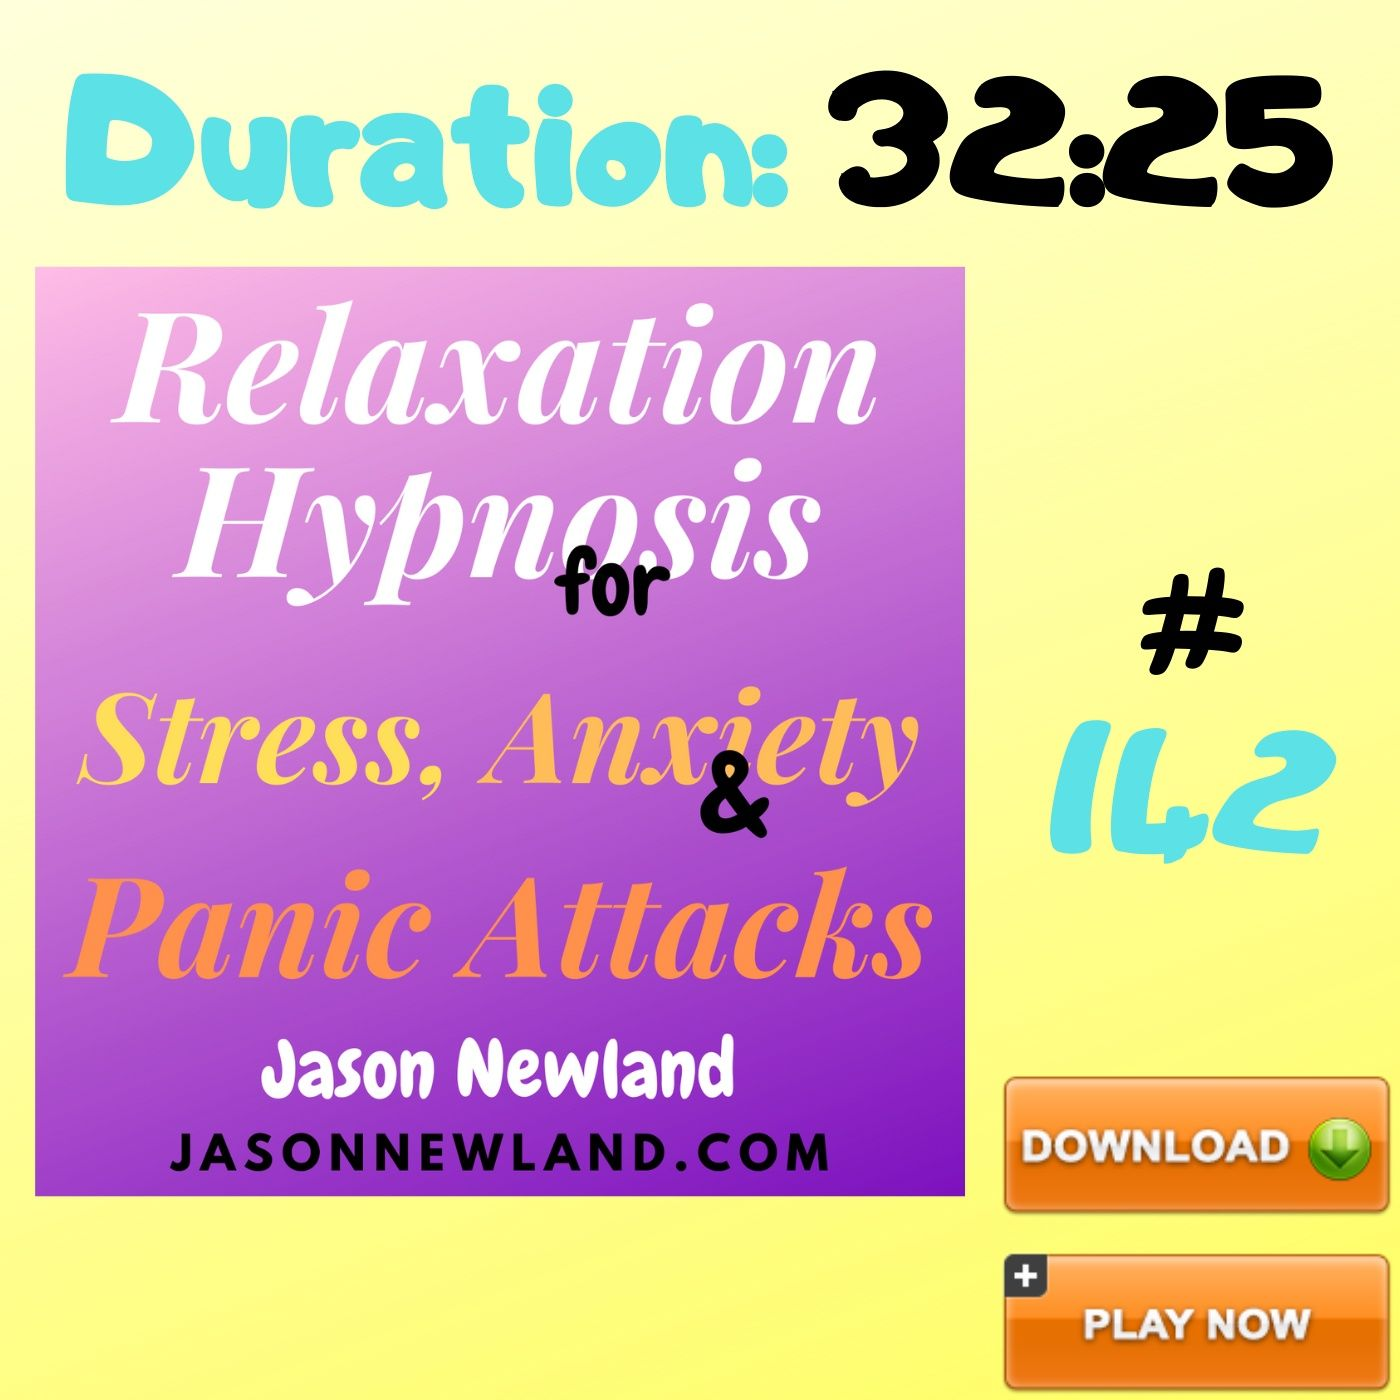 "#142 Relaxation Hypnosis for Stress, Anxiety & Panic Attacks - ""AMAZING, LOVED & DEEPLY RELAXED"" (Jason Newland) (28th May 2020)"